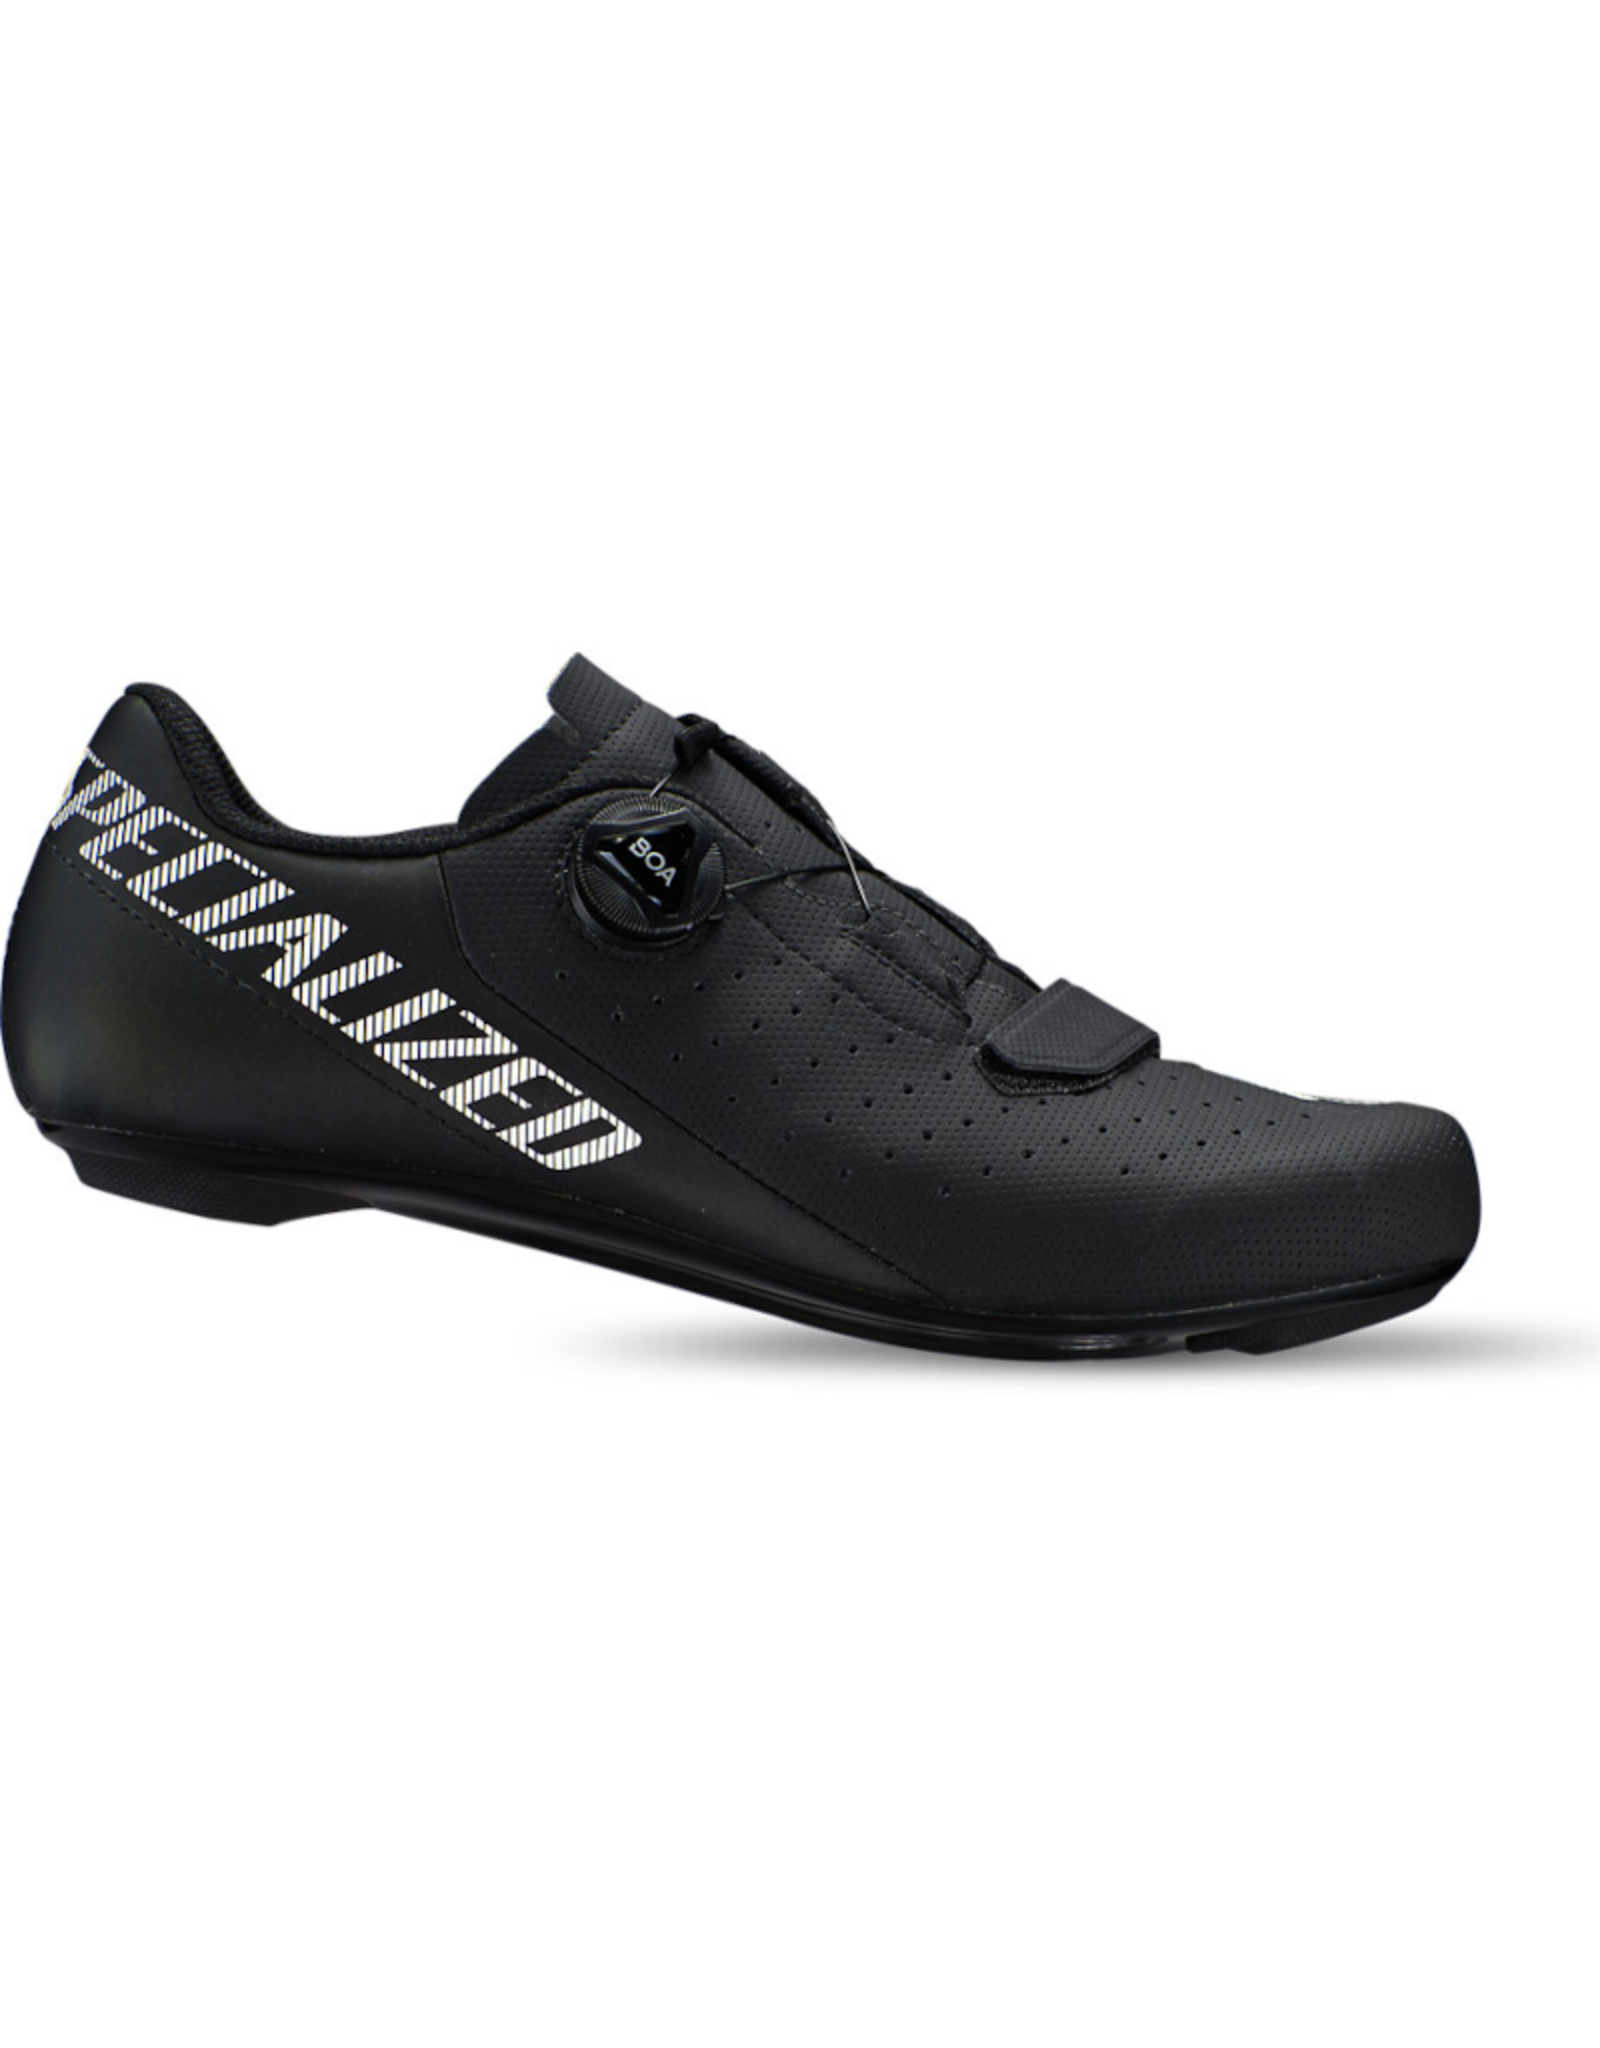 Specialized Torch 1.0 Road Cycling Shoe